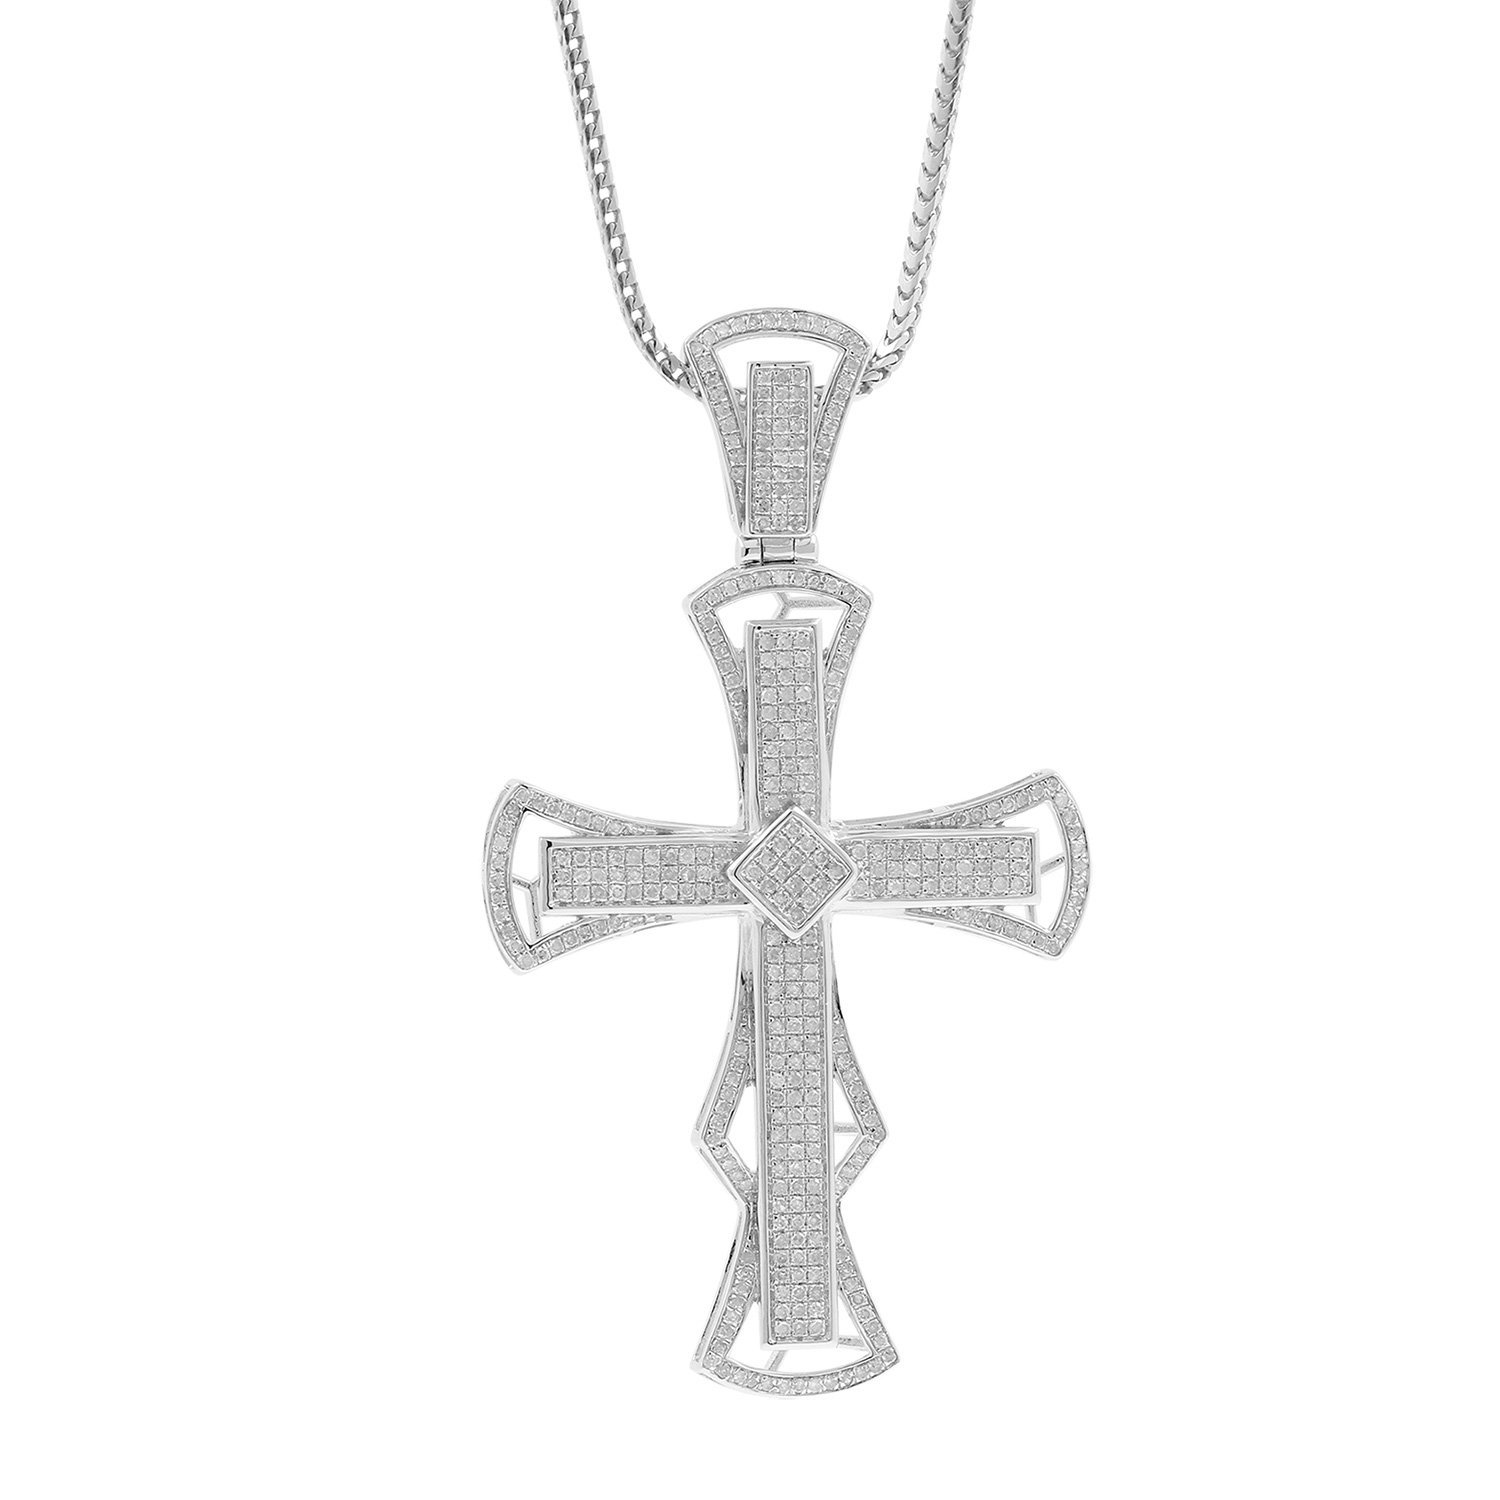 1.33ct Diamond Cross Religious Mens Hip Hop Pendant Necklace in 925 Silver